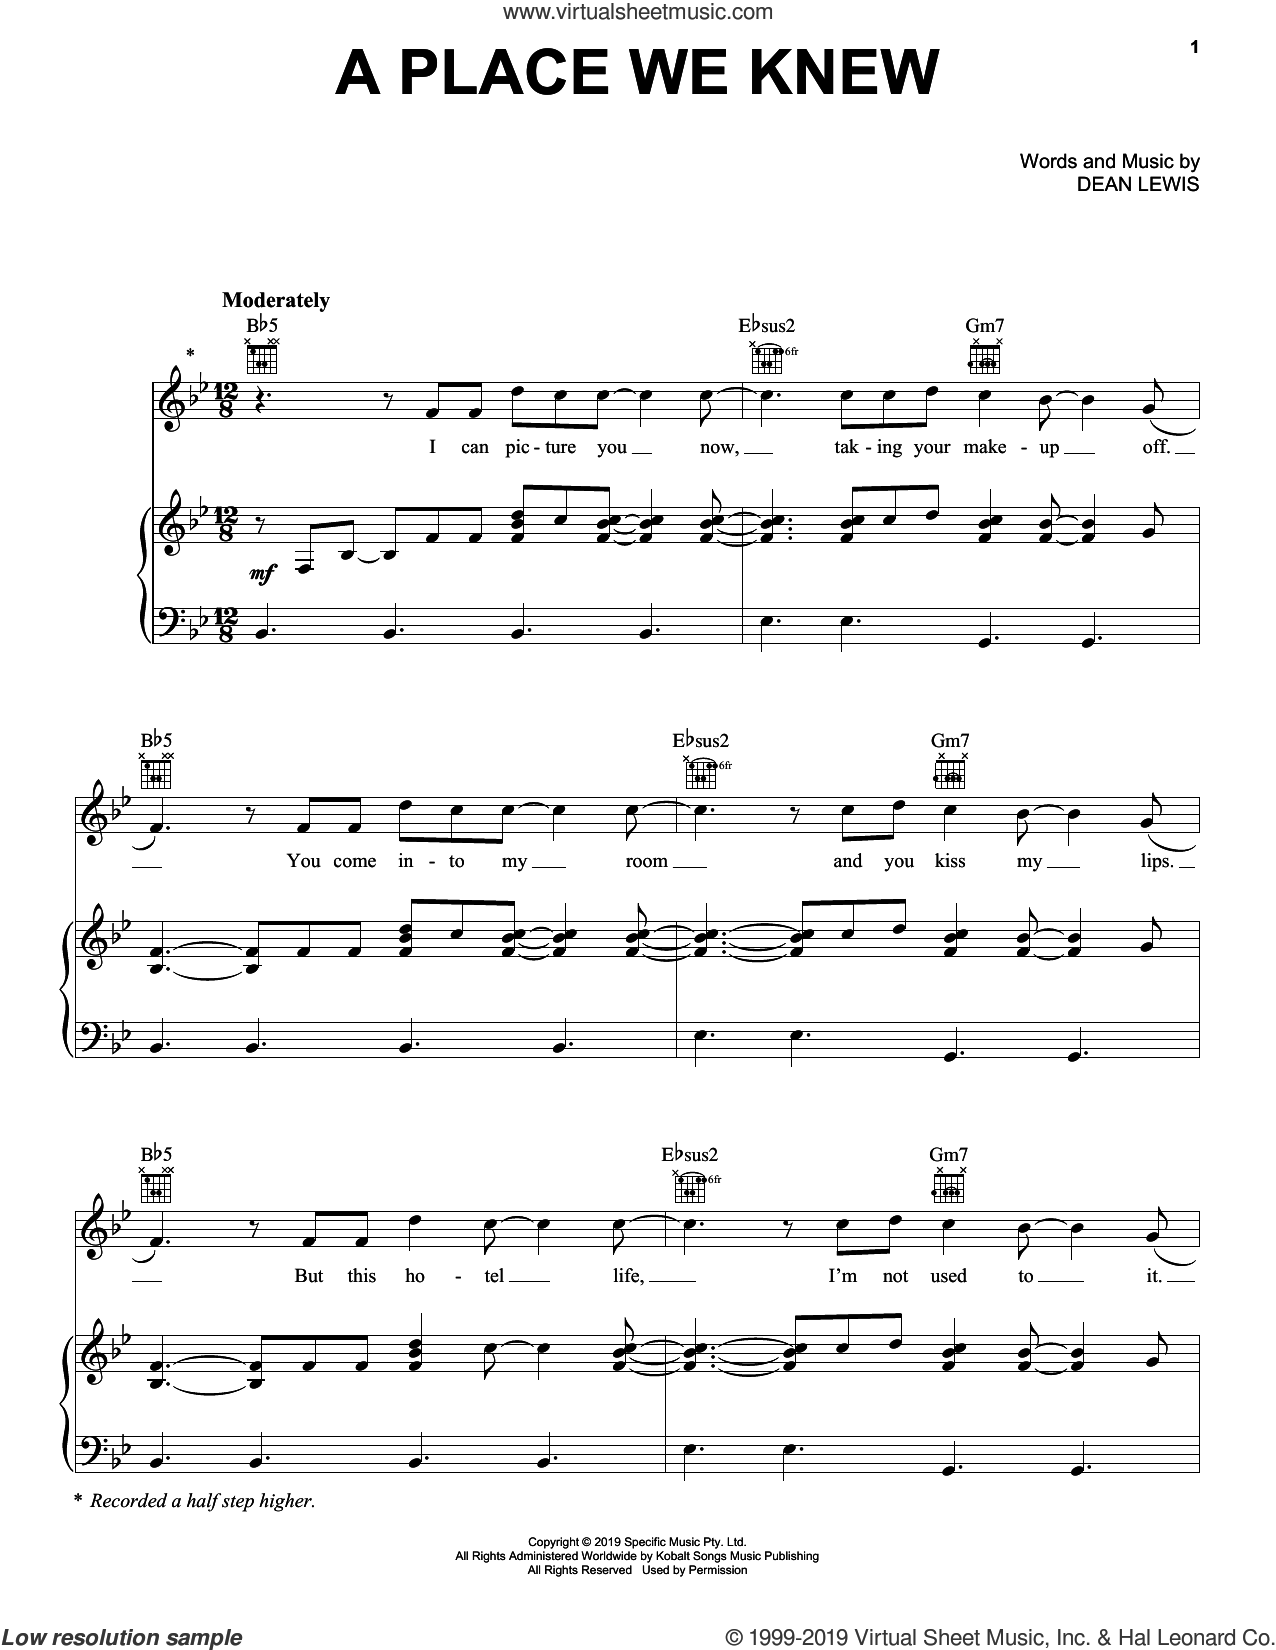 A Place We Knew sheet music for voice, piano or guitar by Dean Lewis, intermediate skill level